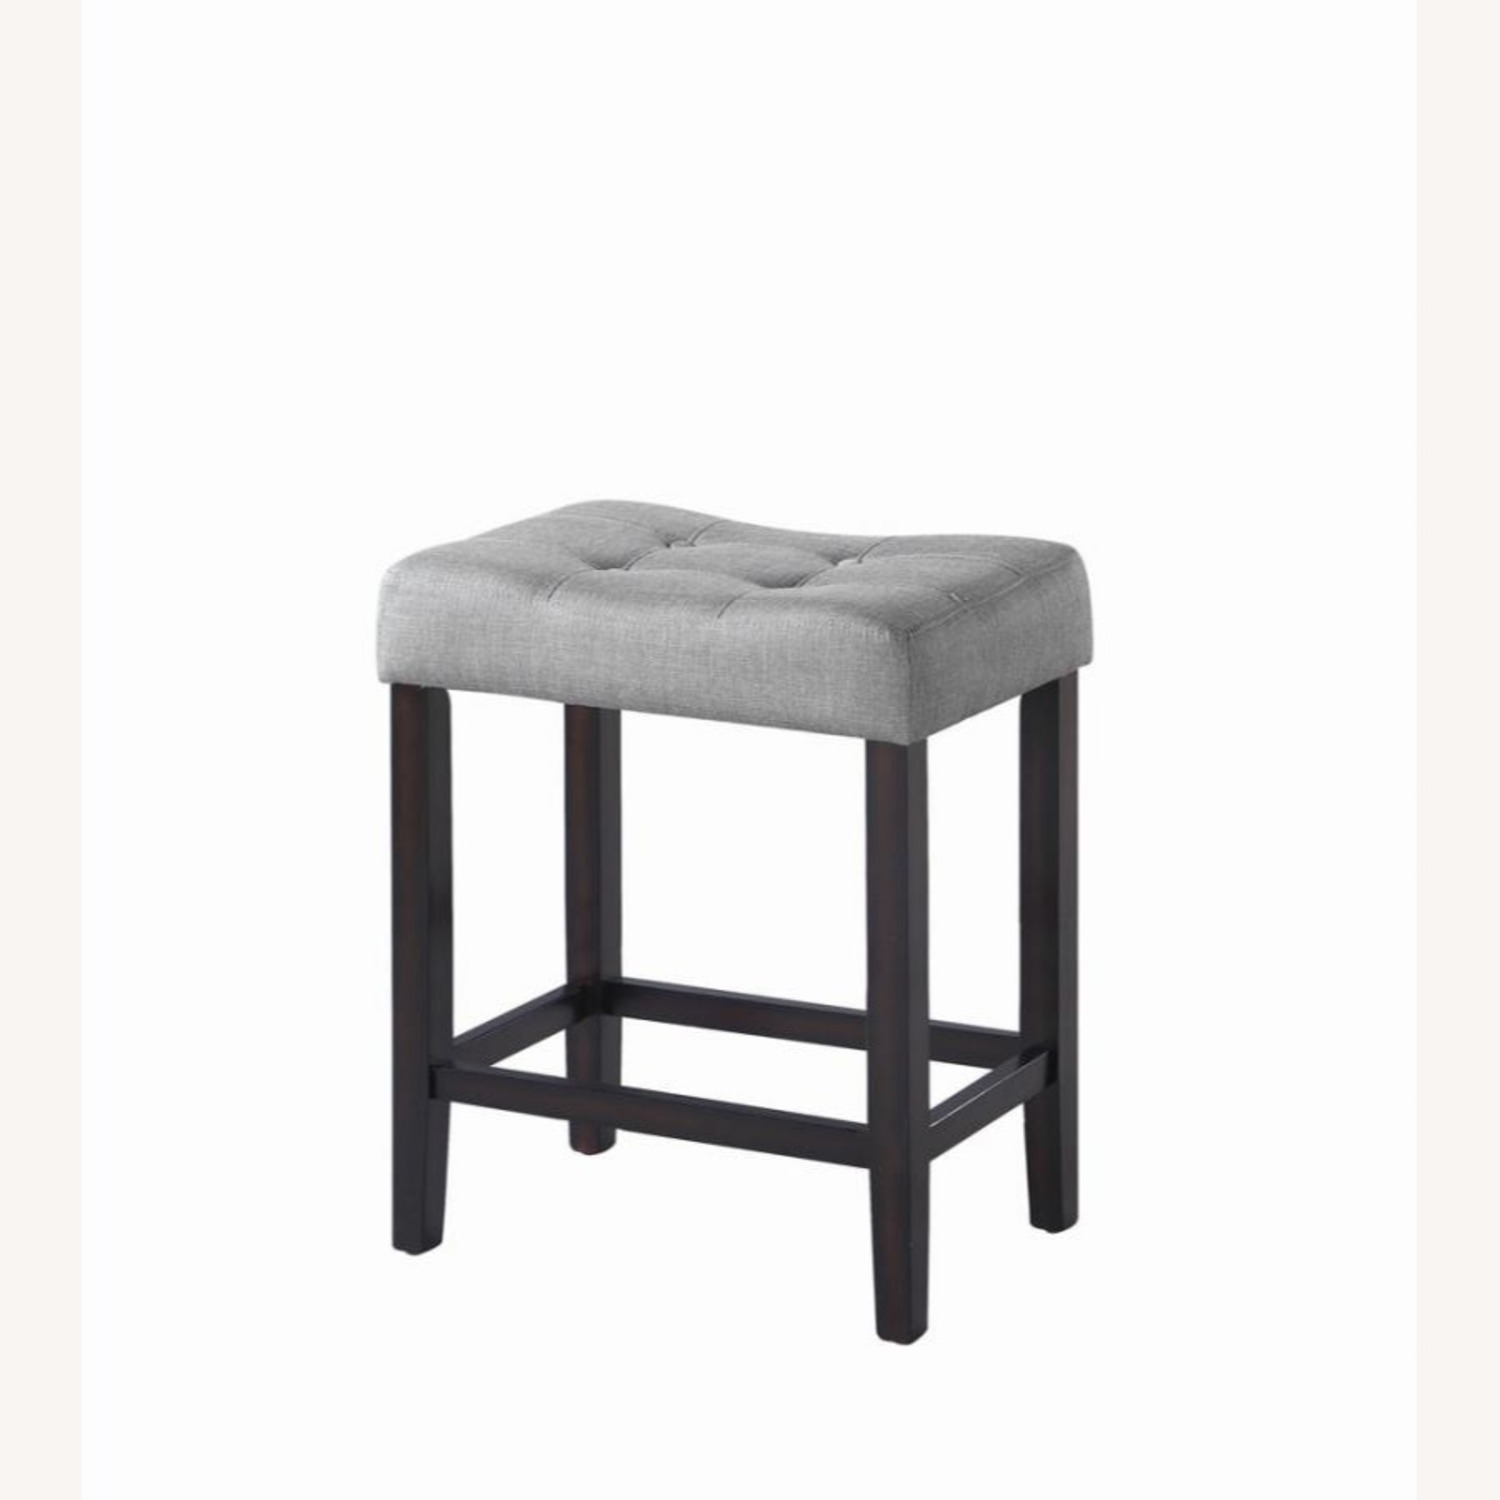 Counter Height Stool In Grey Fabric Tufted Seating - image-0